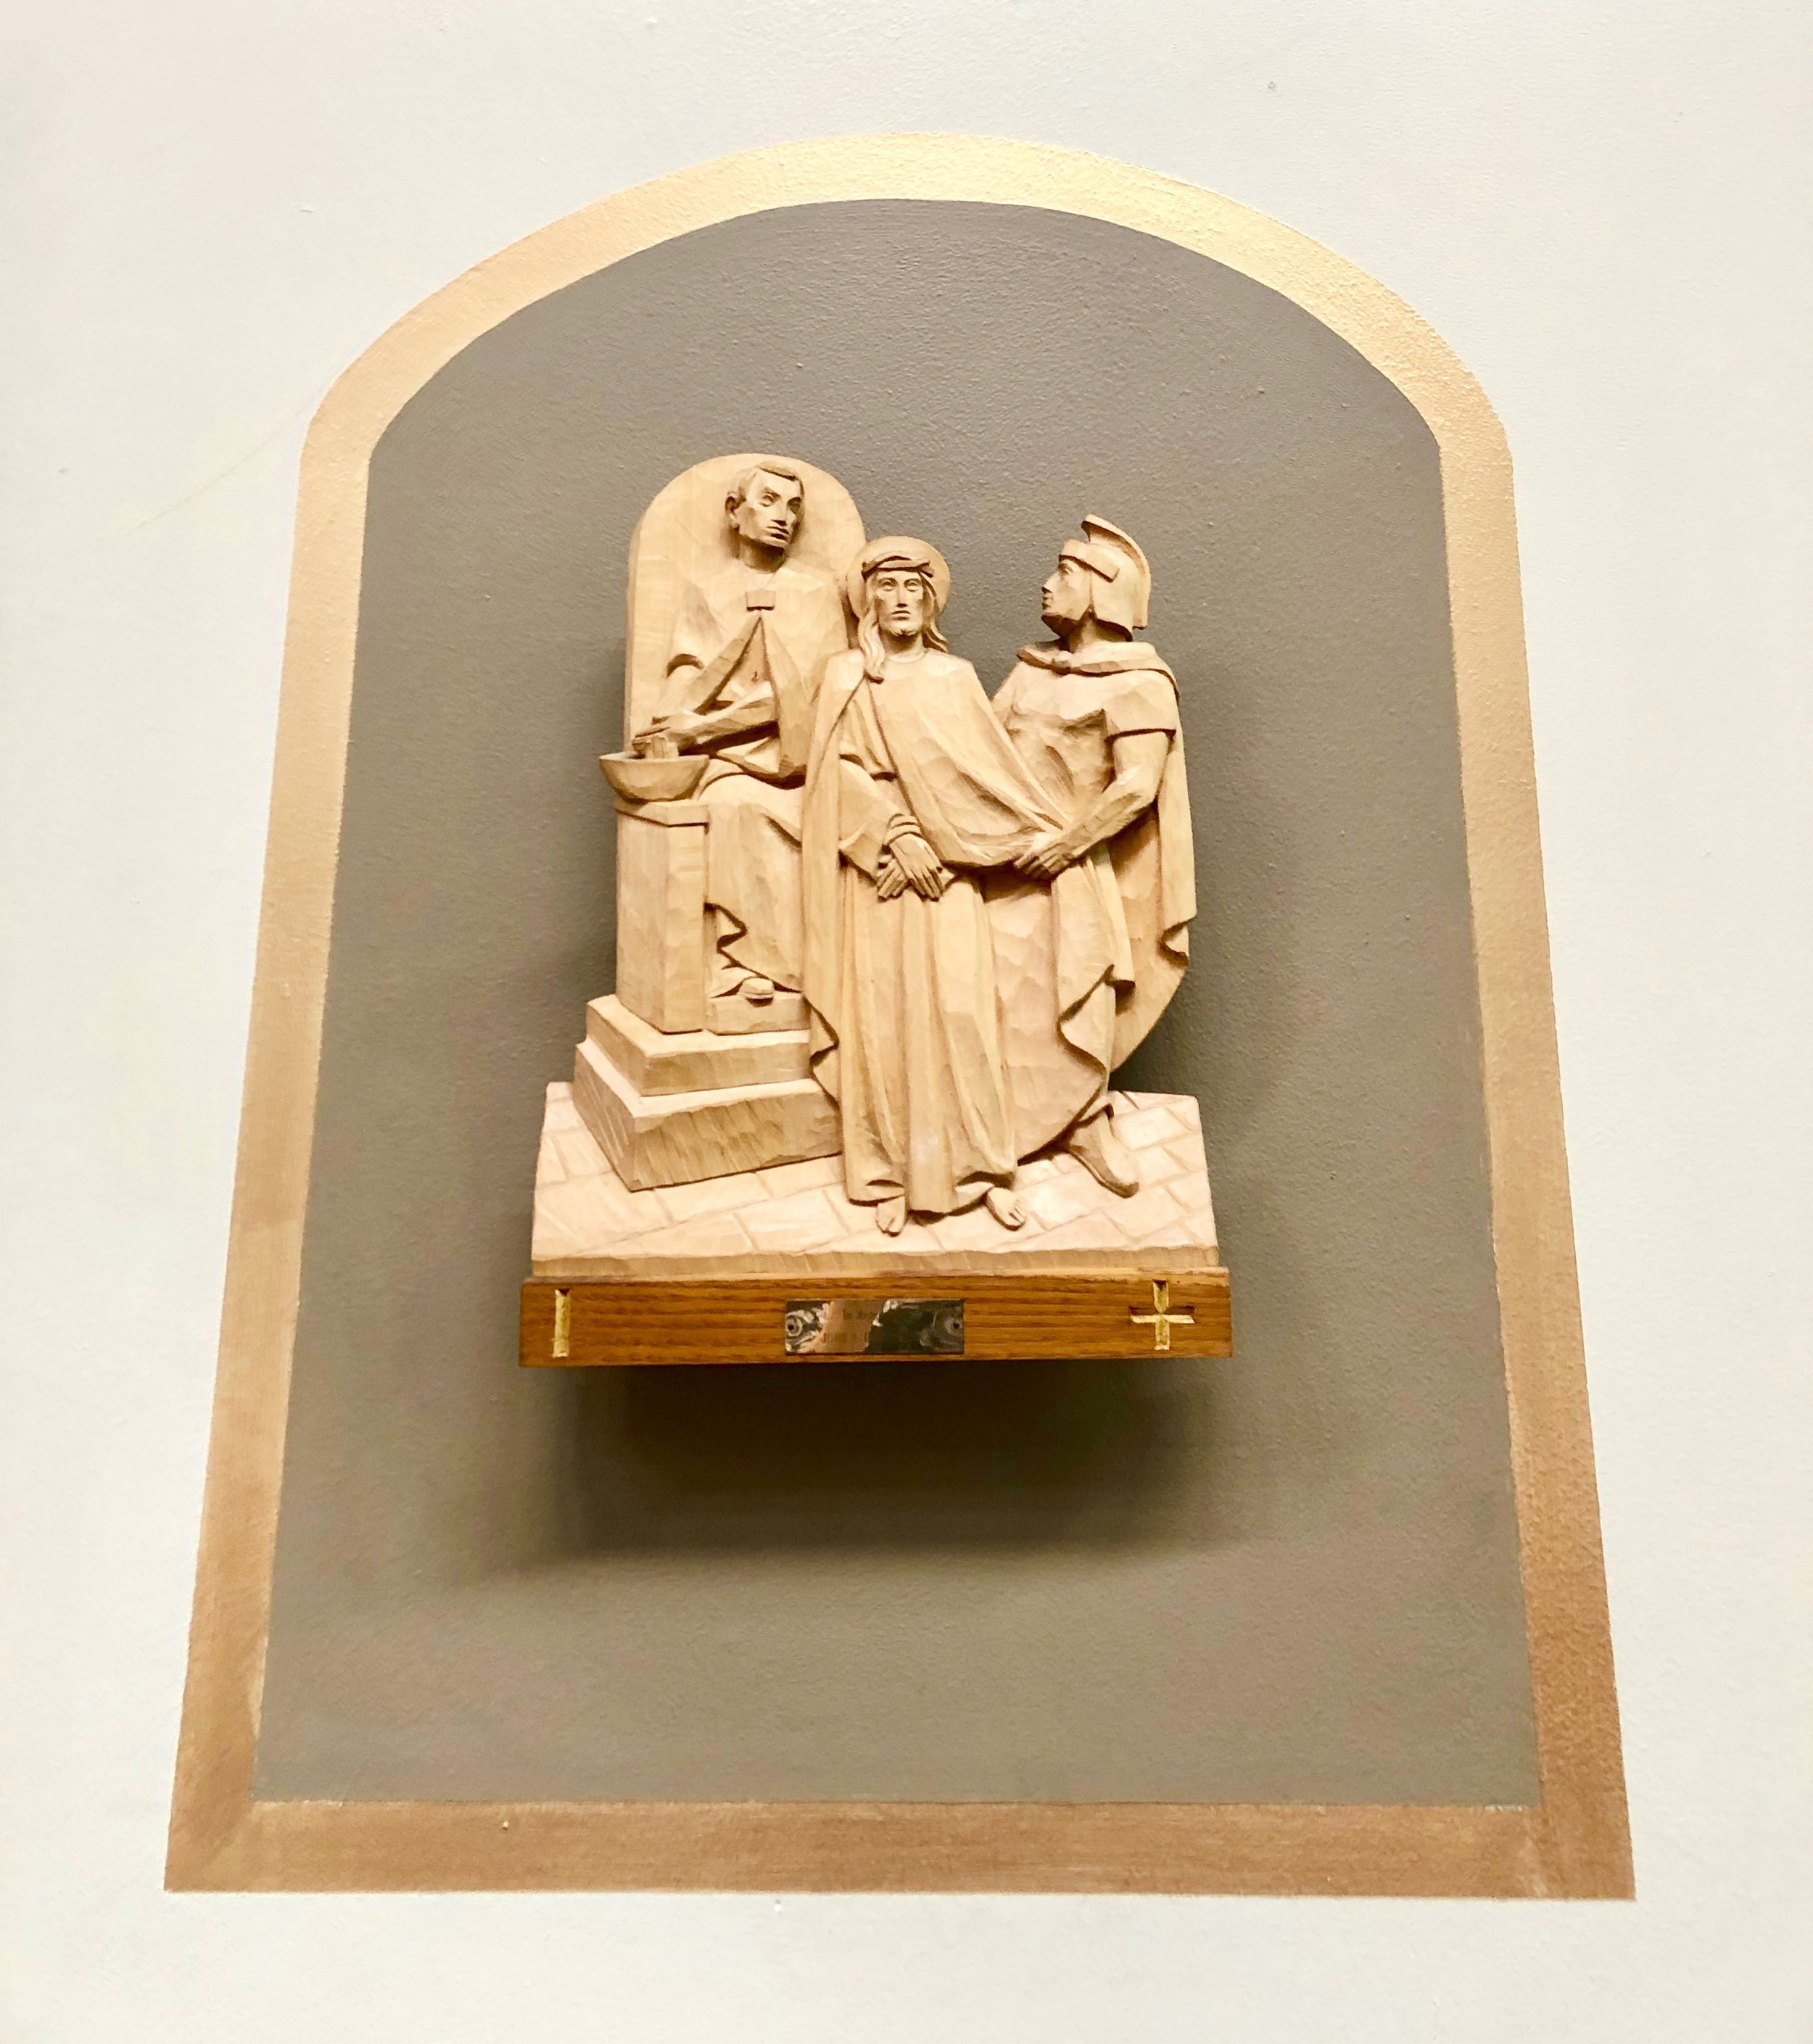 Copy of Wooden Station of the Cross, Jesus Cruifixion, St Joseph's Catholic Church, Capitola, California, Lanzini